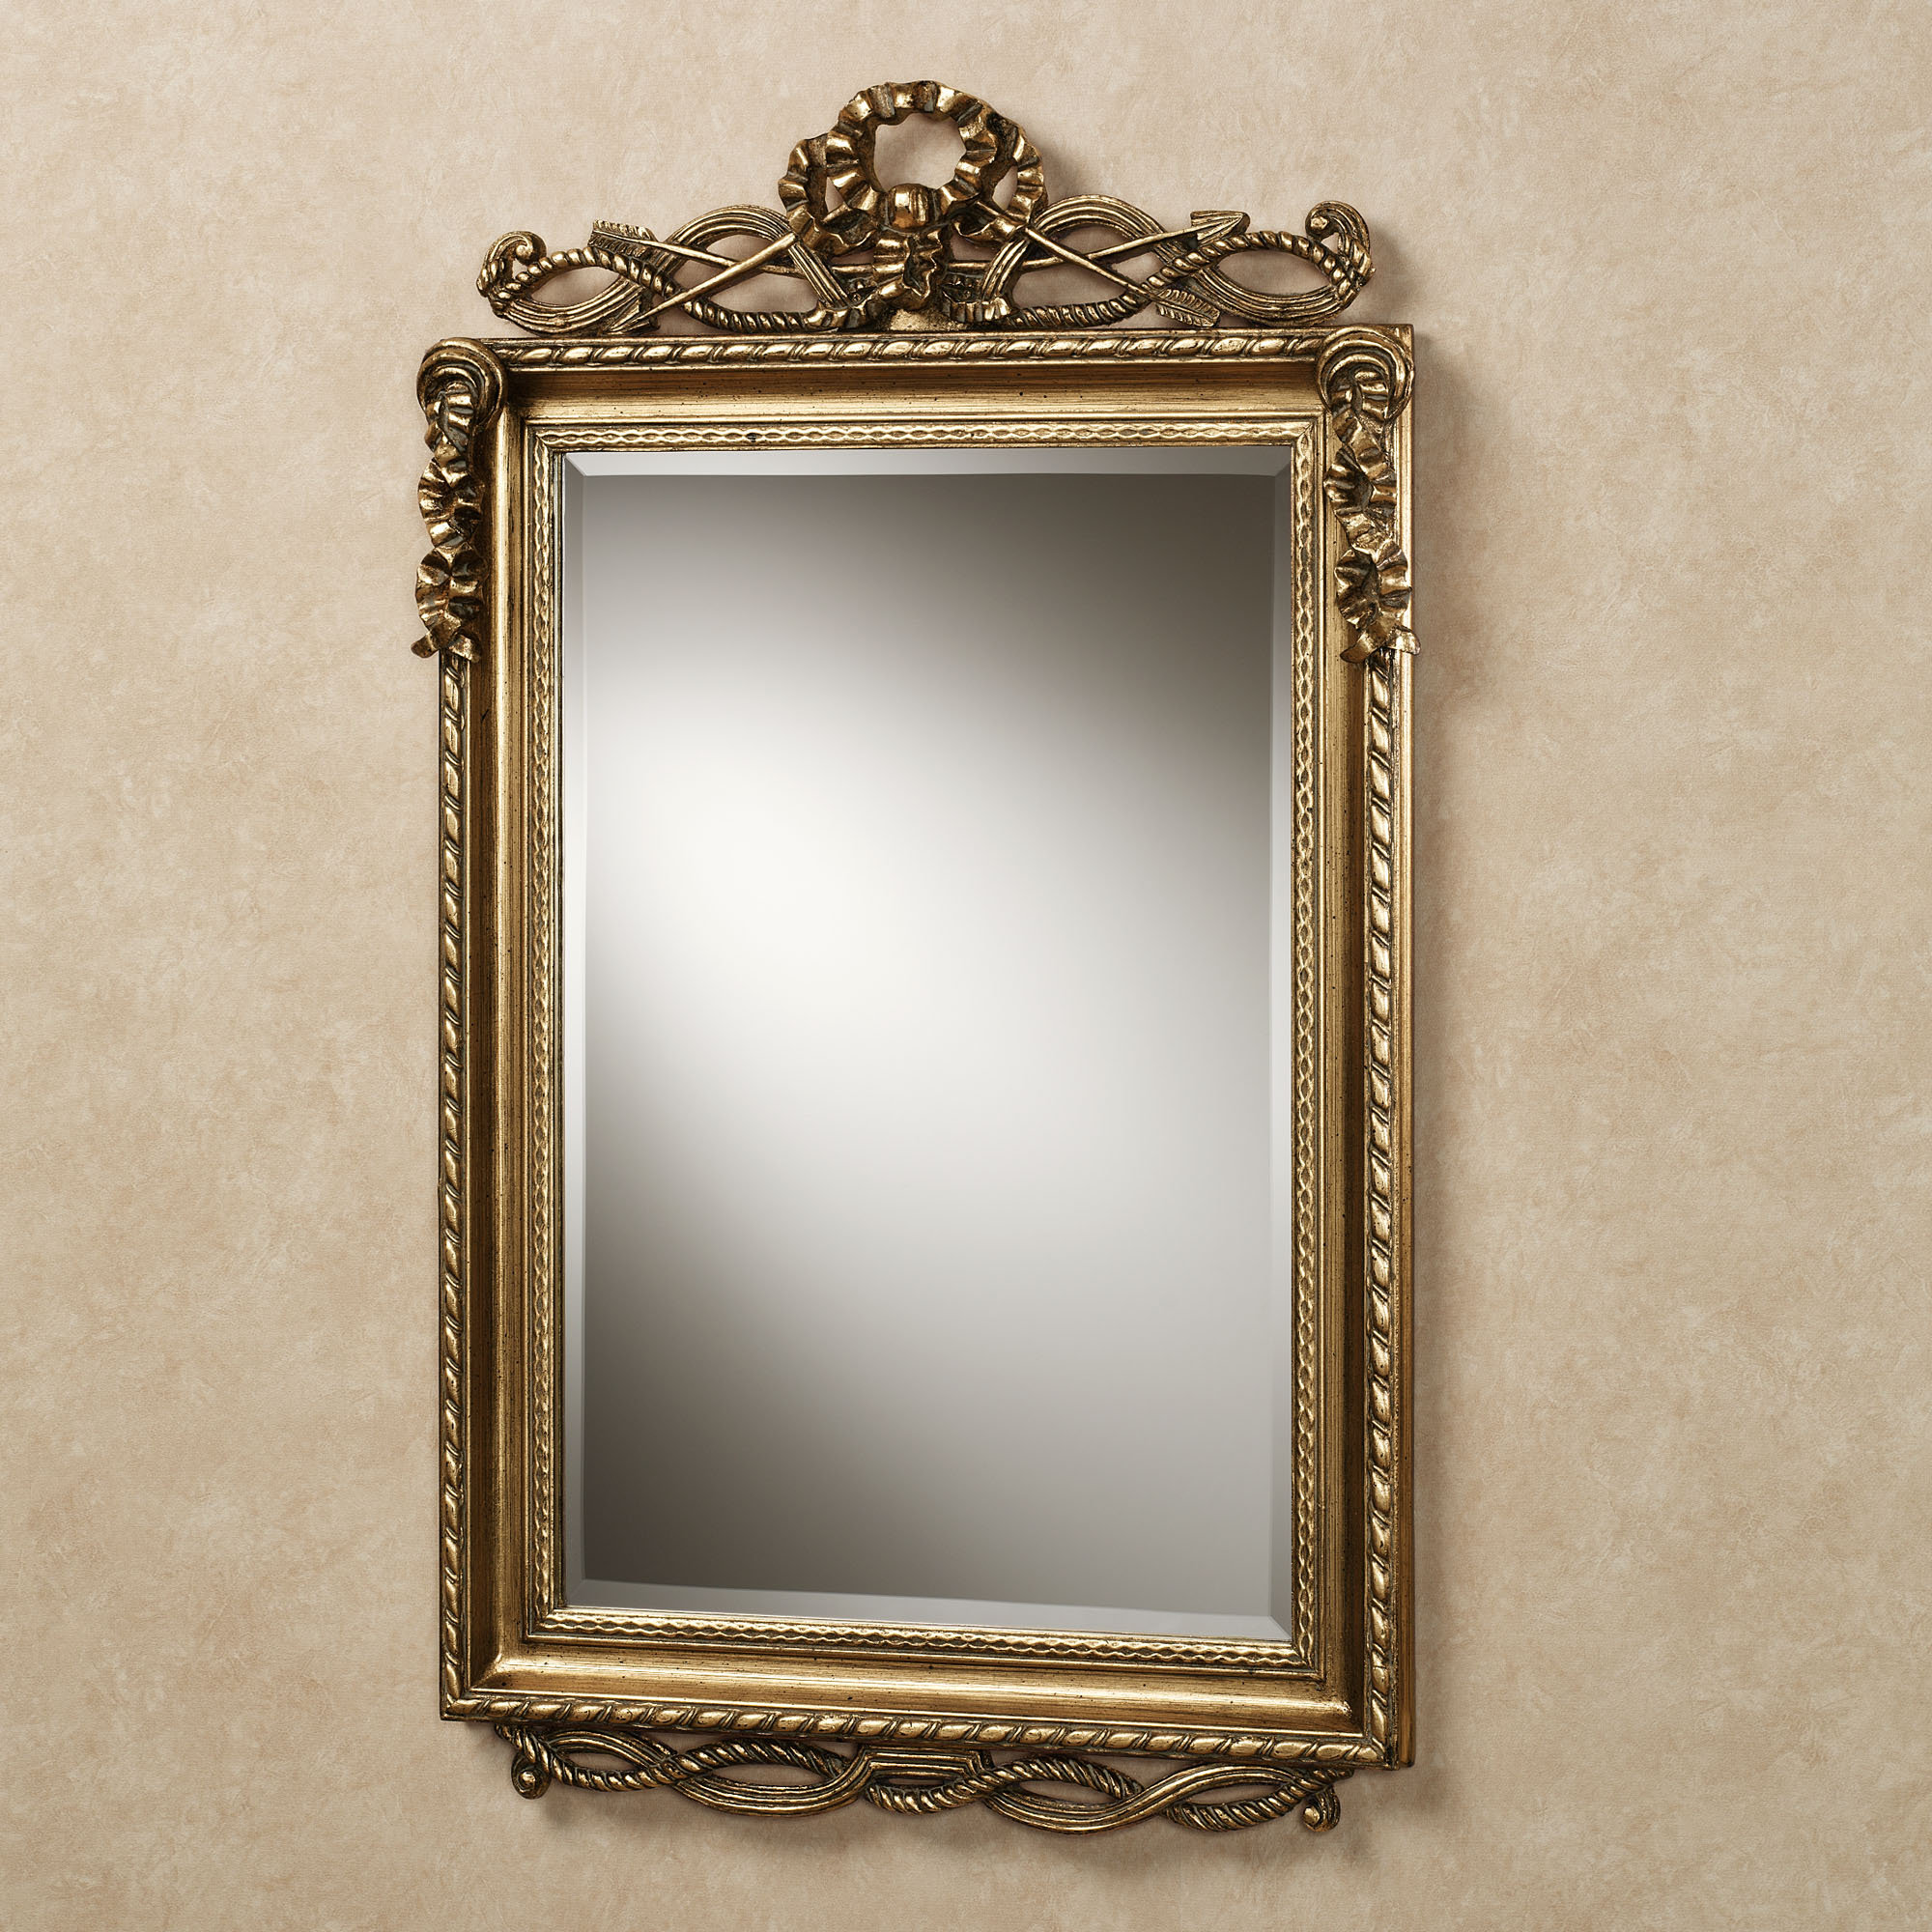 Antique Vintage Wall Mirrors